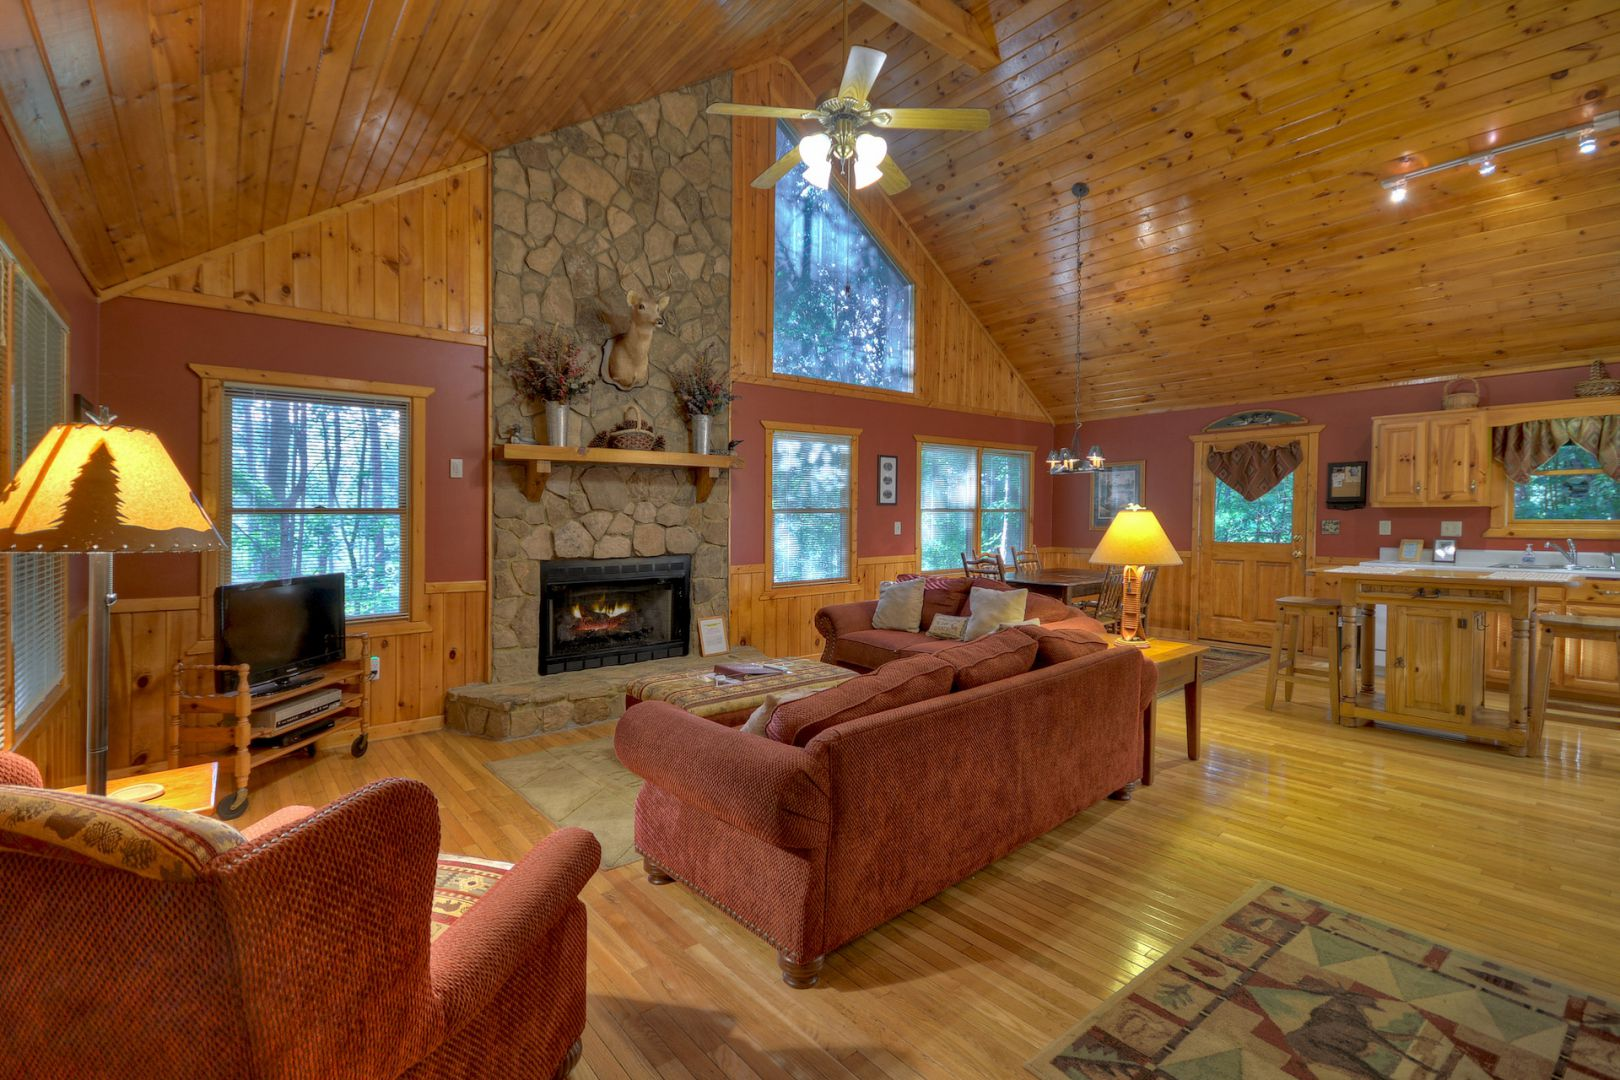 Affordable Car Rental >> Loon Loft Cabin Rental Cabin | Cuddle Up Cabin Rentals